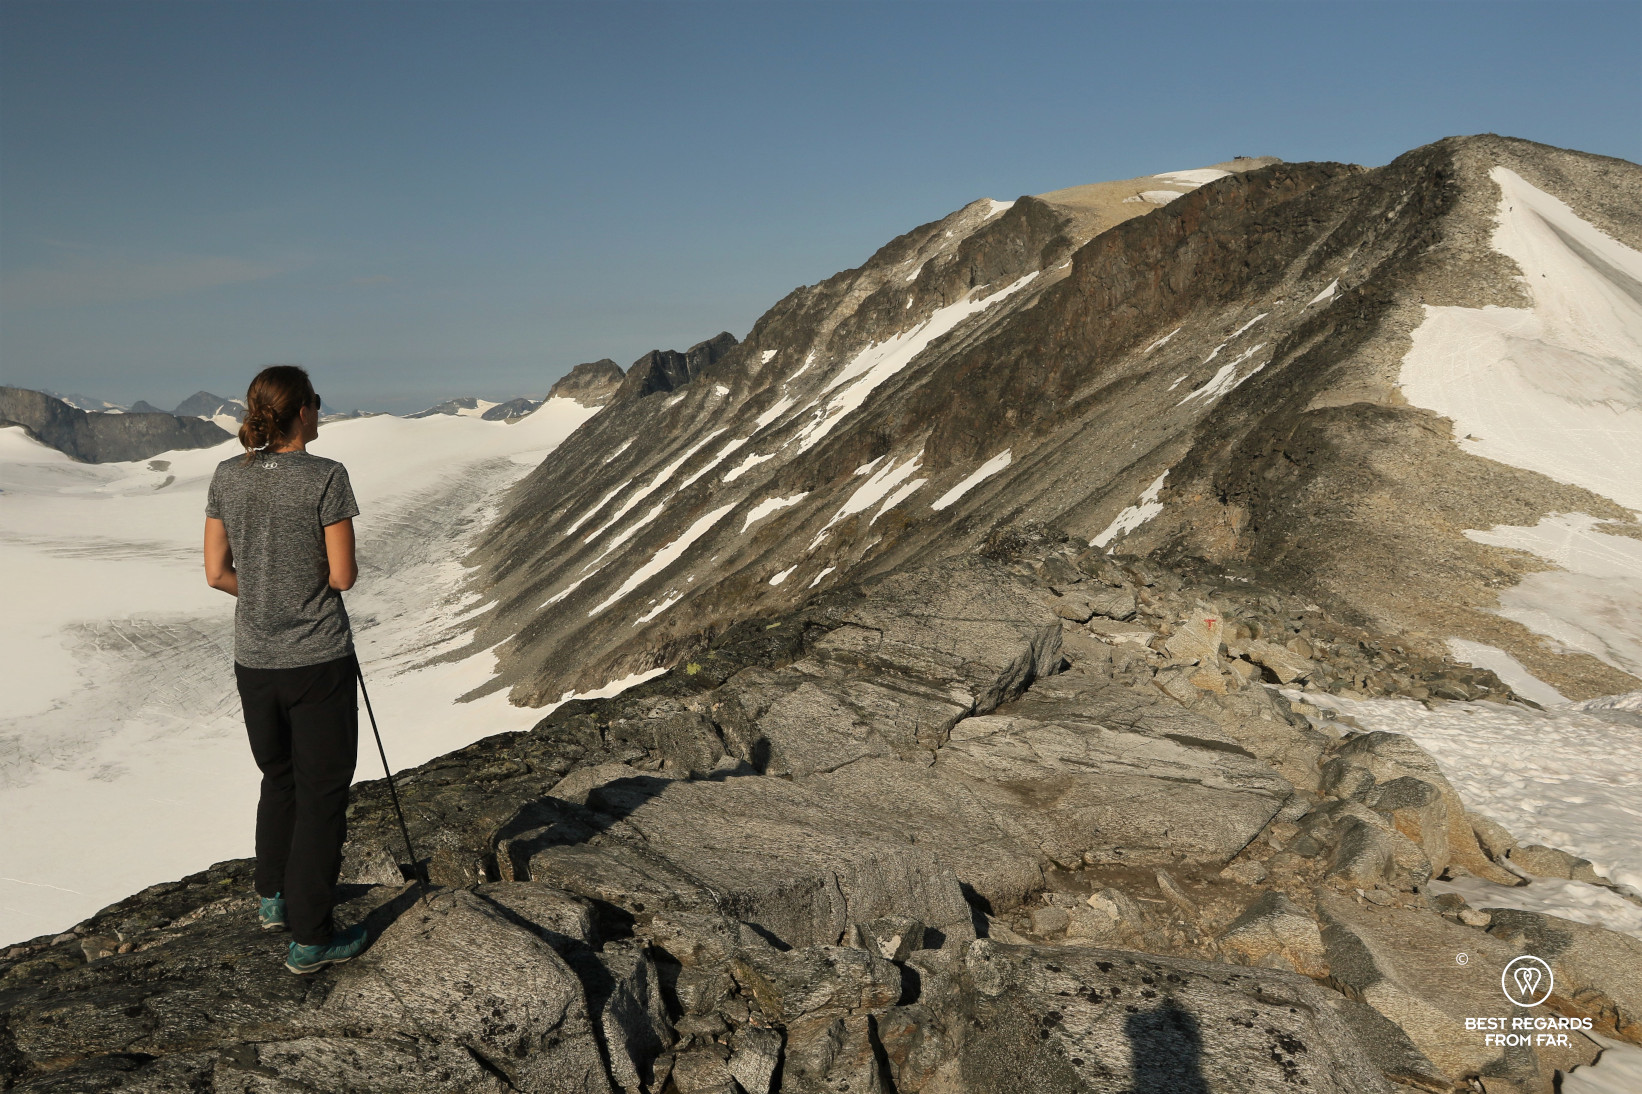 Woman in t-shirt on the rocky trail ascending Norway's highest mountain in Jotunheimen NP